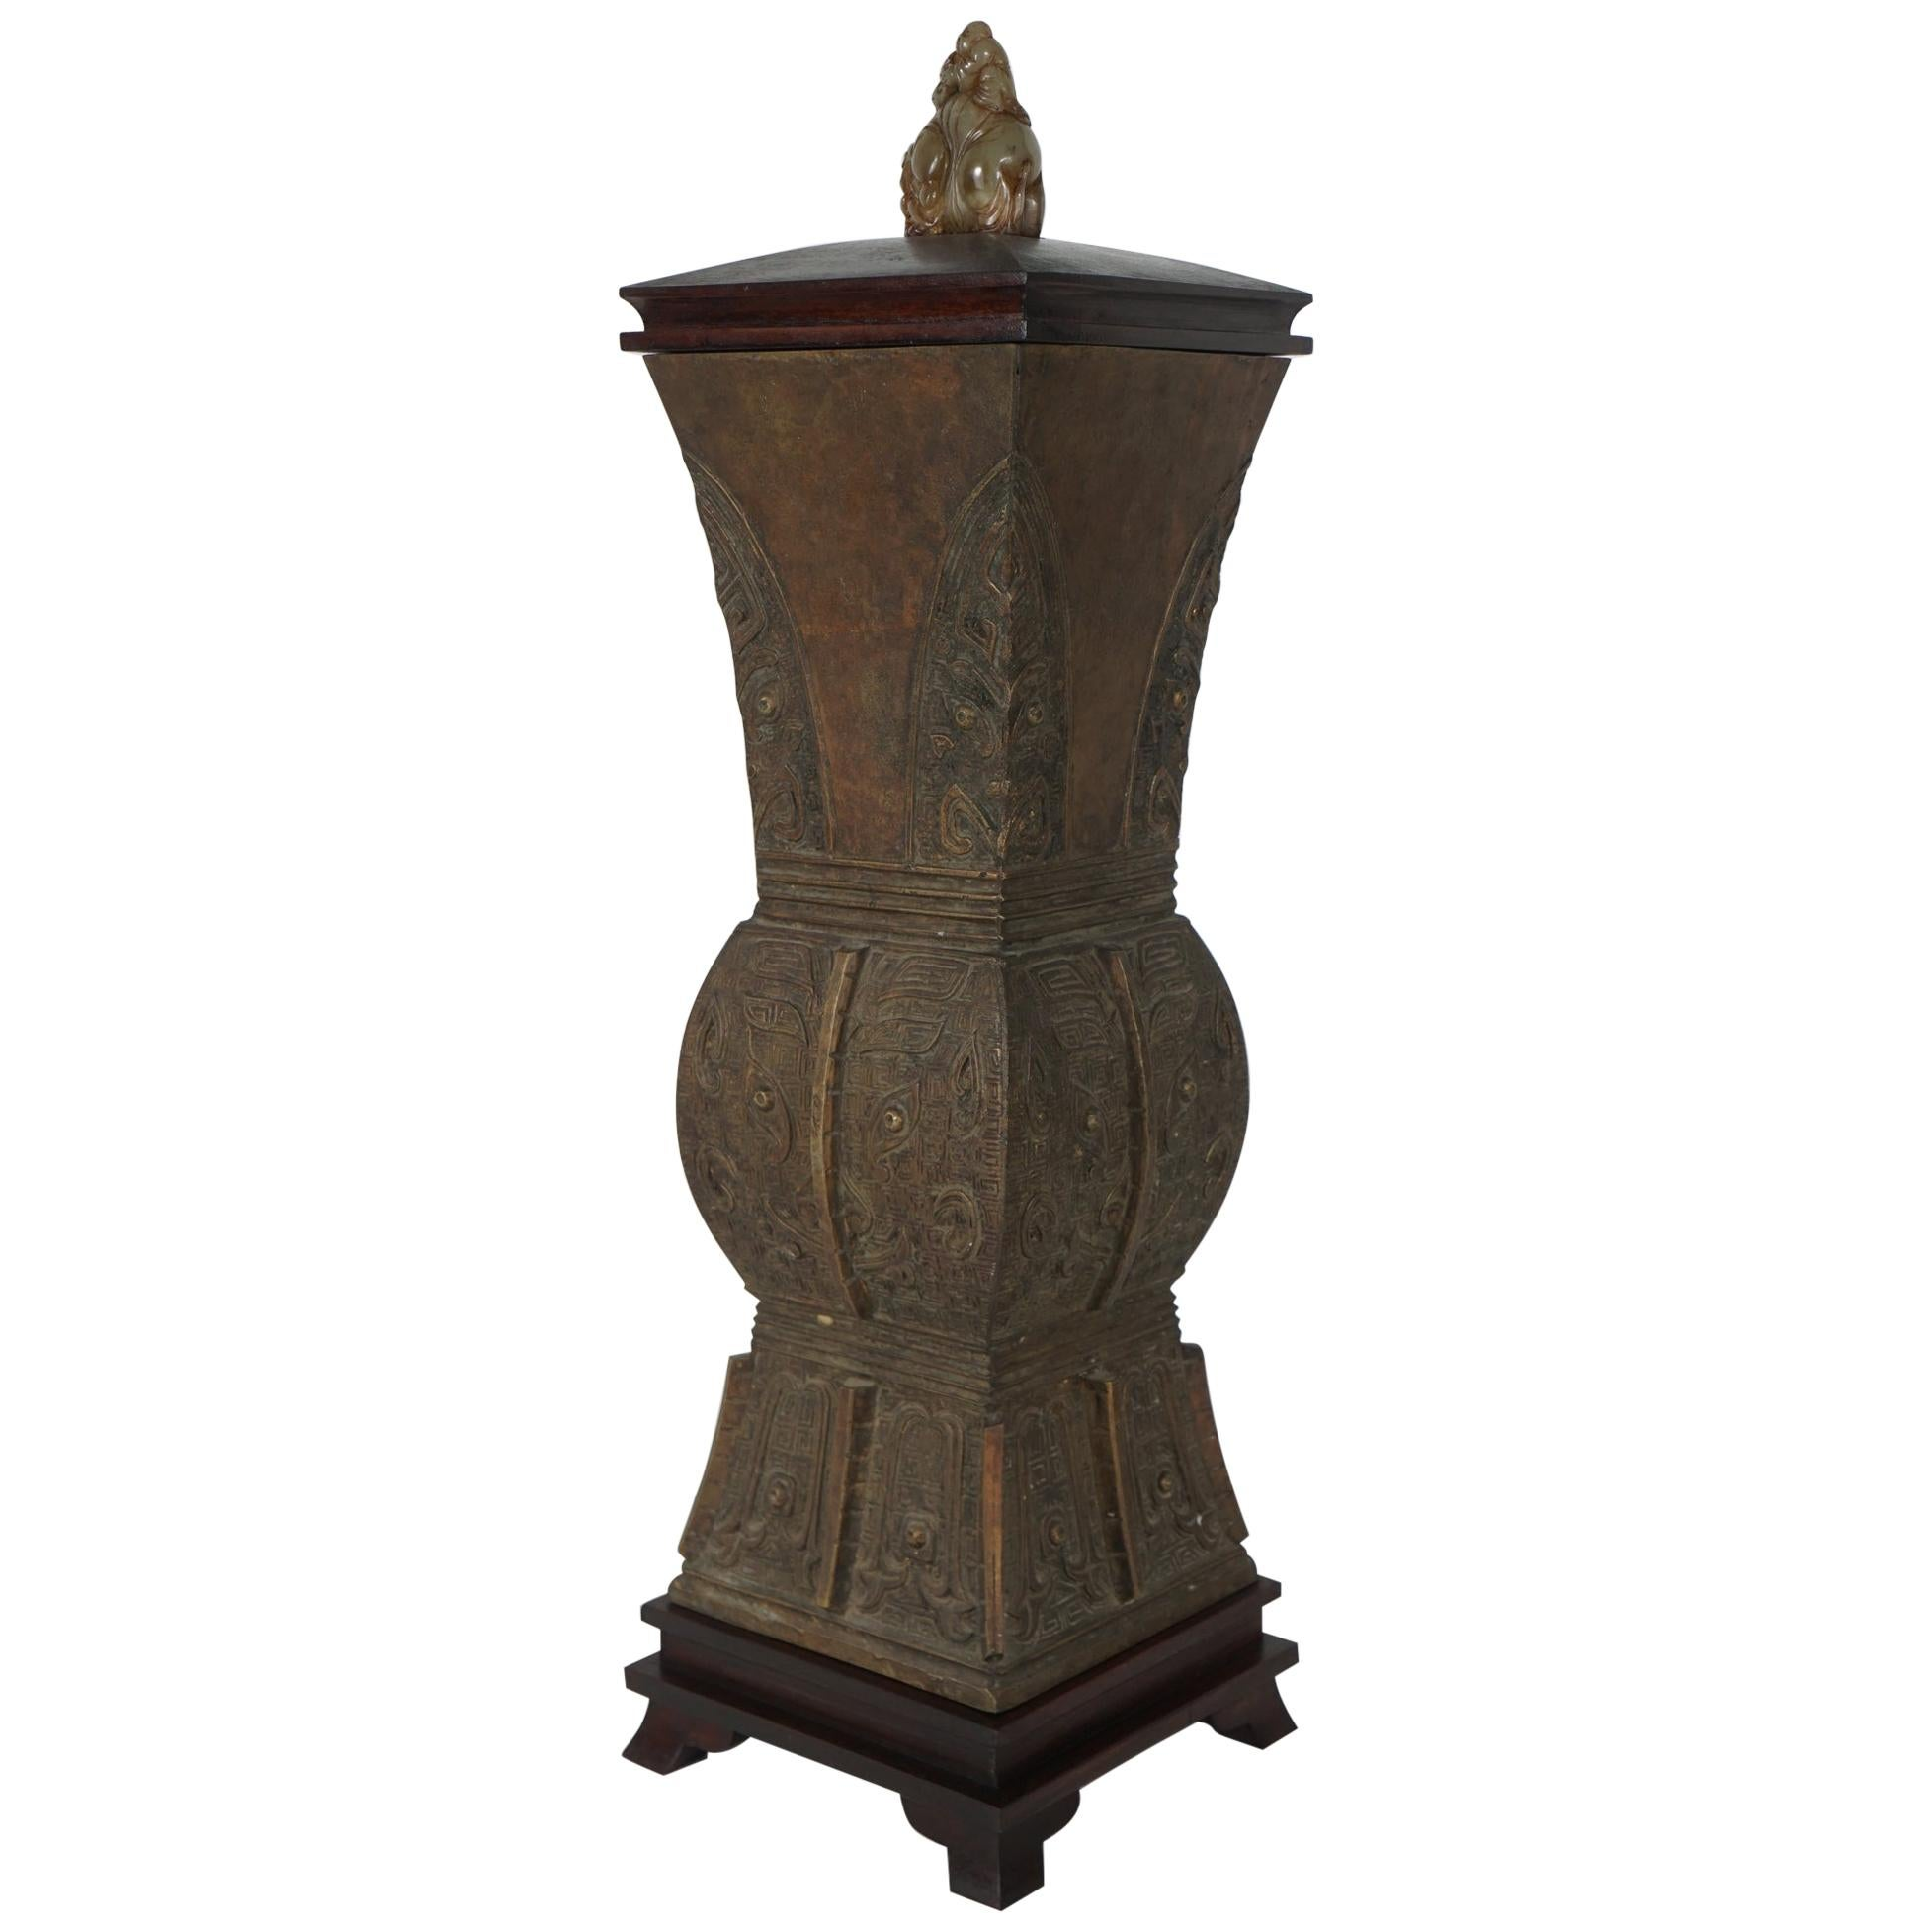 Chinese Arcaistic Style Cast Bronze Lidded Urn with Carved Jade Finial